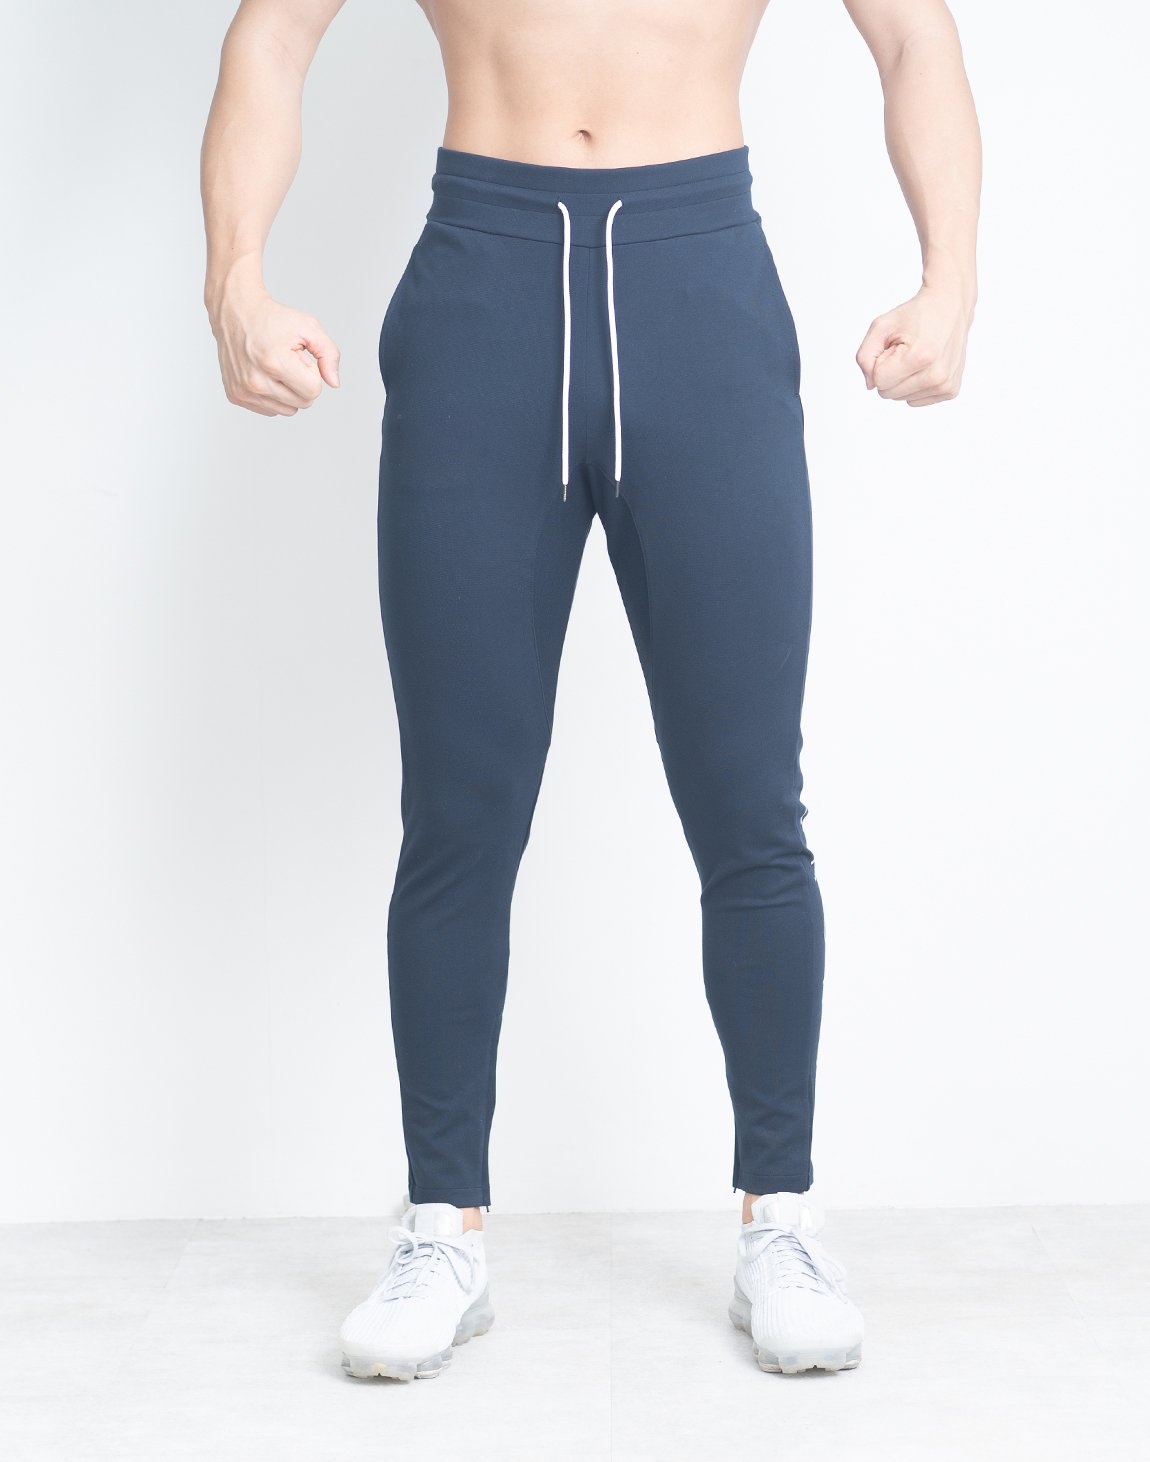 <img class='new_mark_img1' src='https://img.shop-pro.jp/img/new/icons1.gif' style='border:none;display:inline;margin:0px;padding:0px;width:auto;' />CRONOS PLAIN PANTS【NAVY】